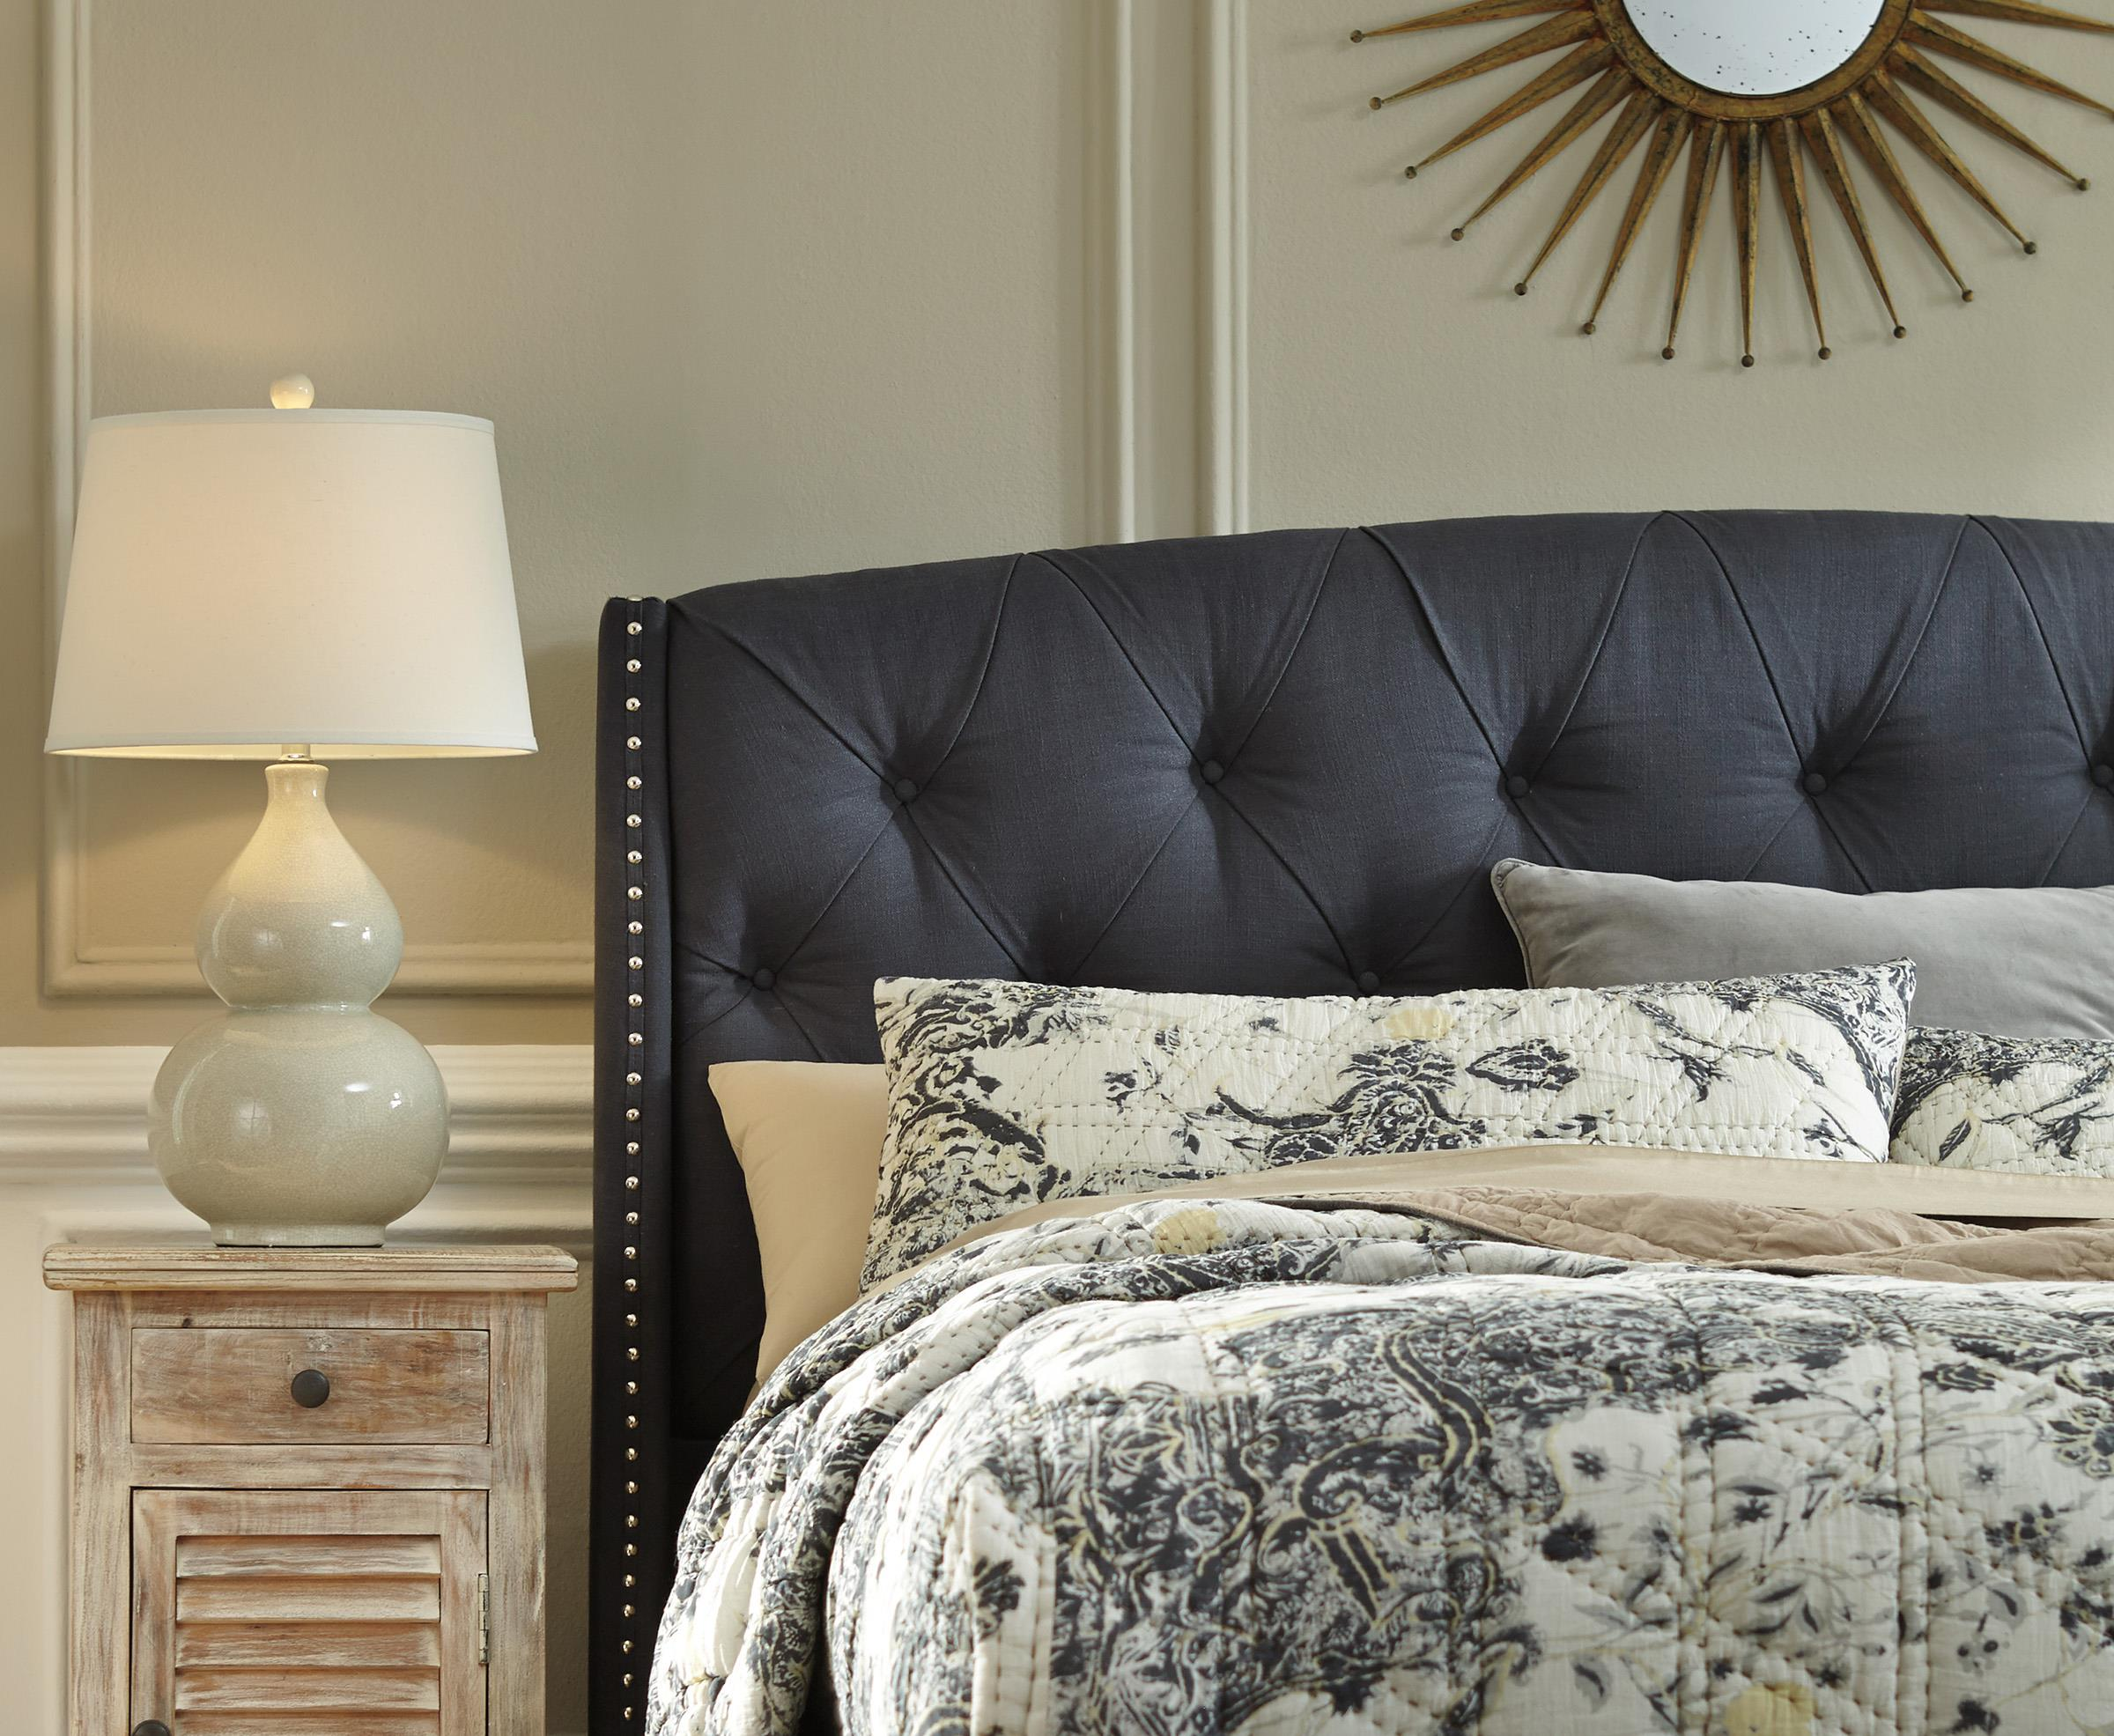 Queen Upholstered Headboard In Dark Gray With Tufting And